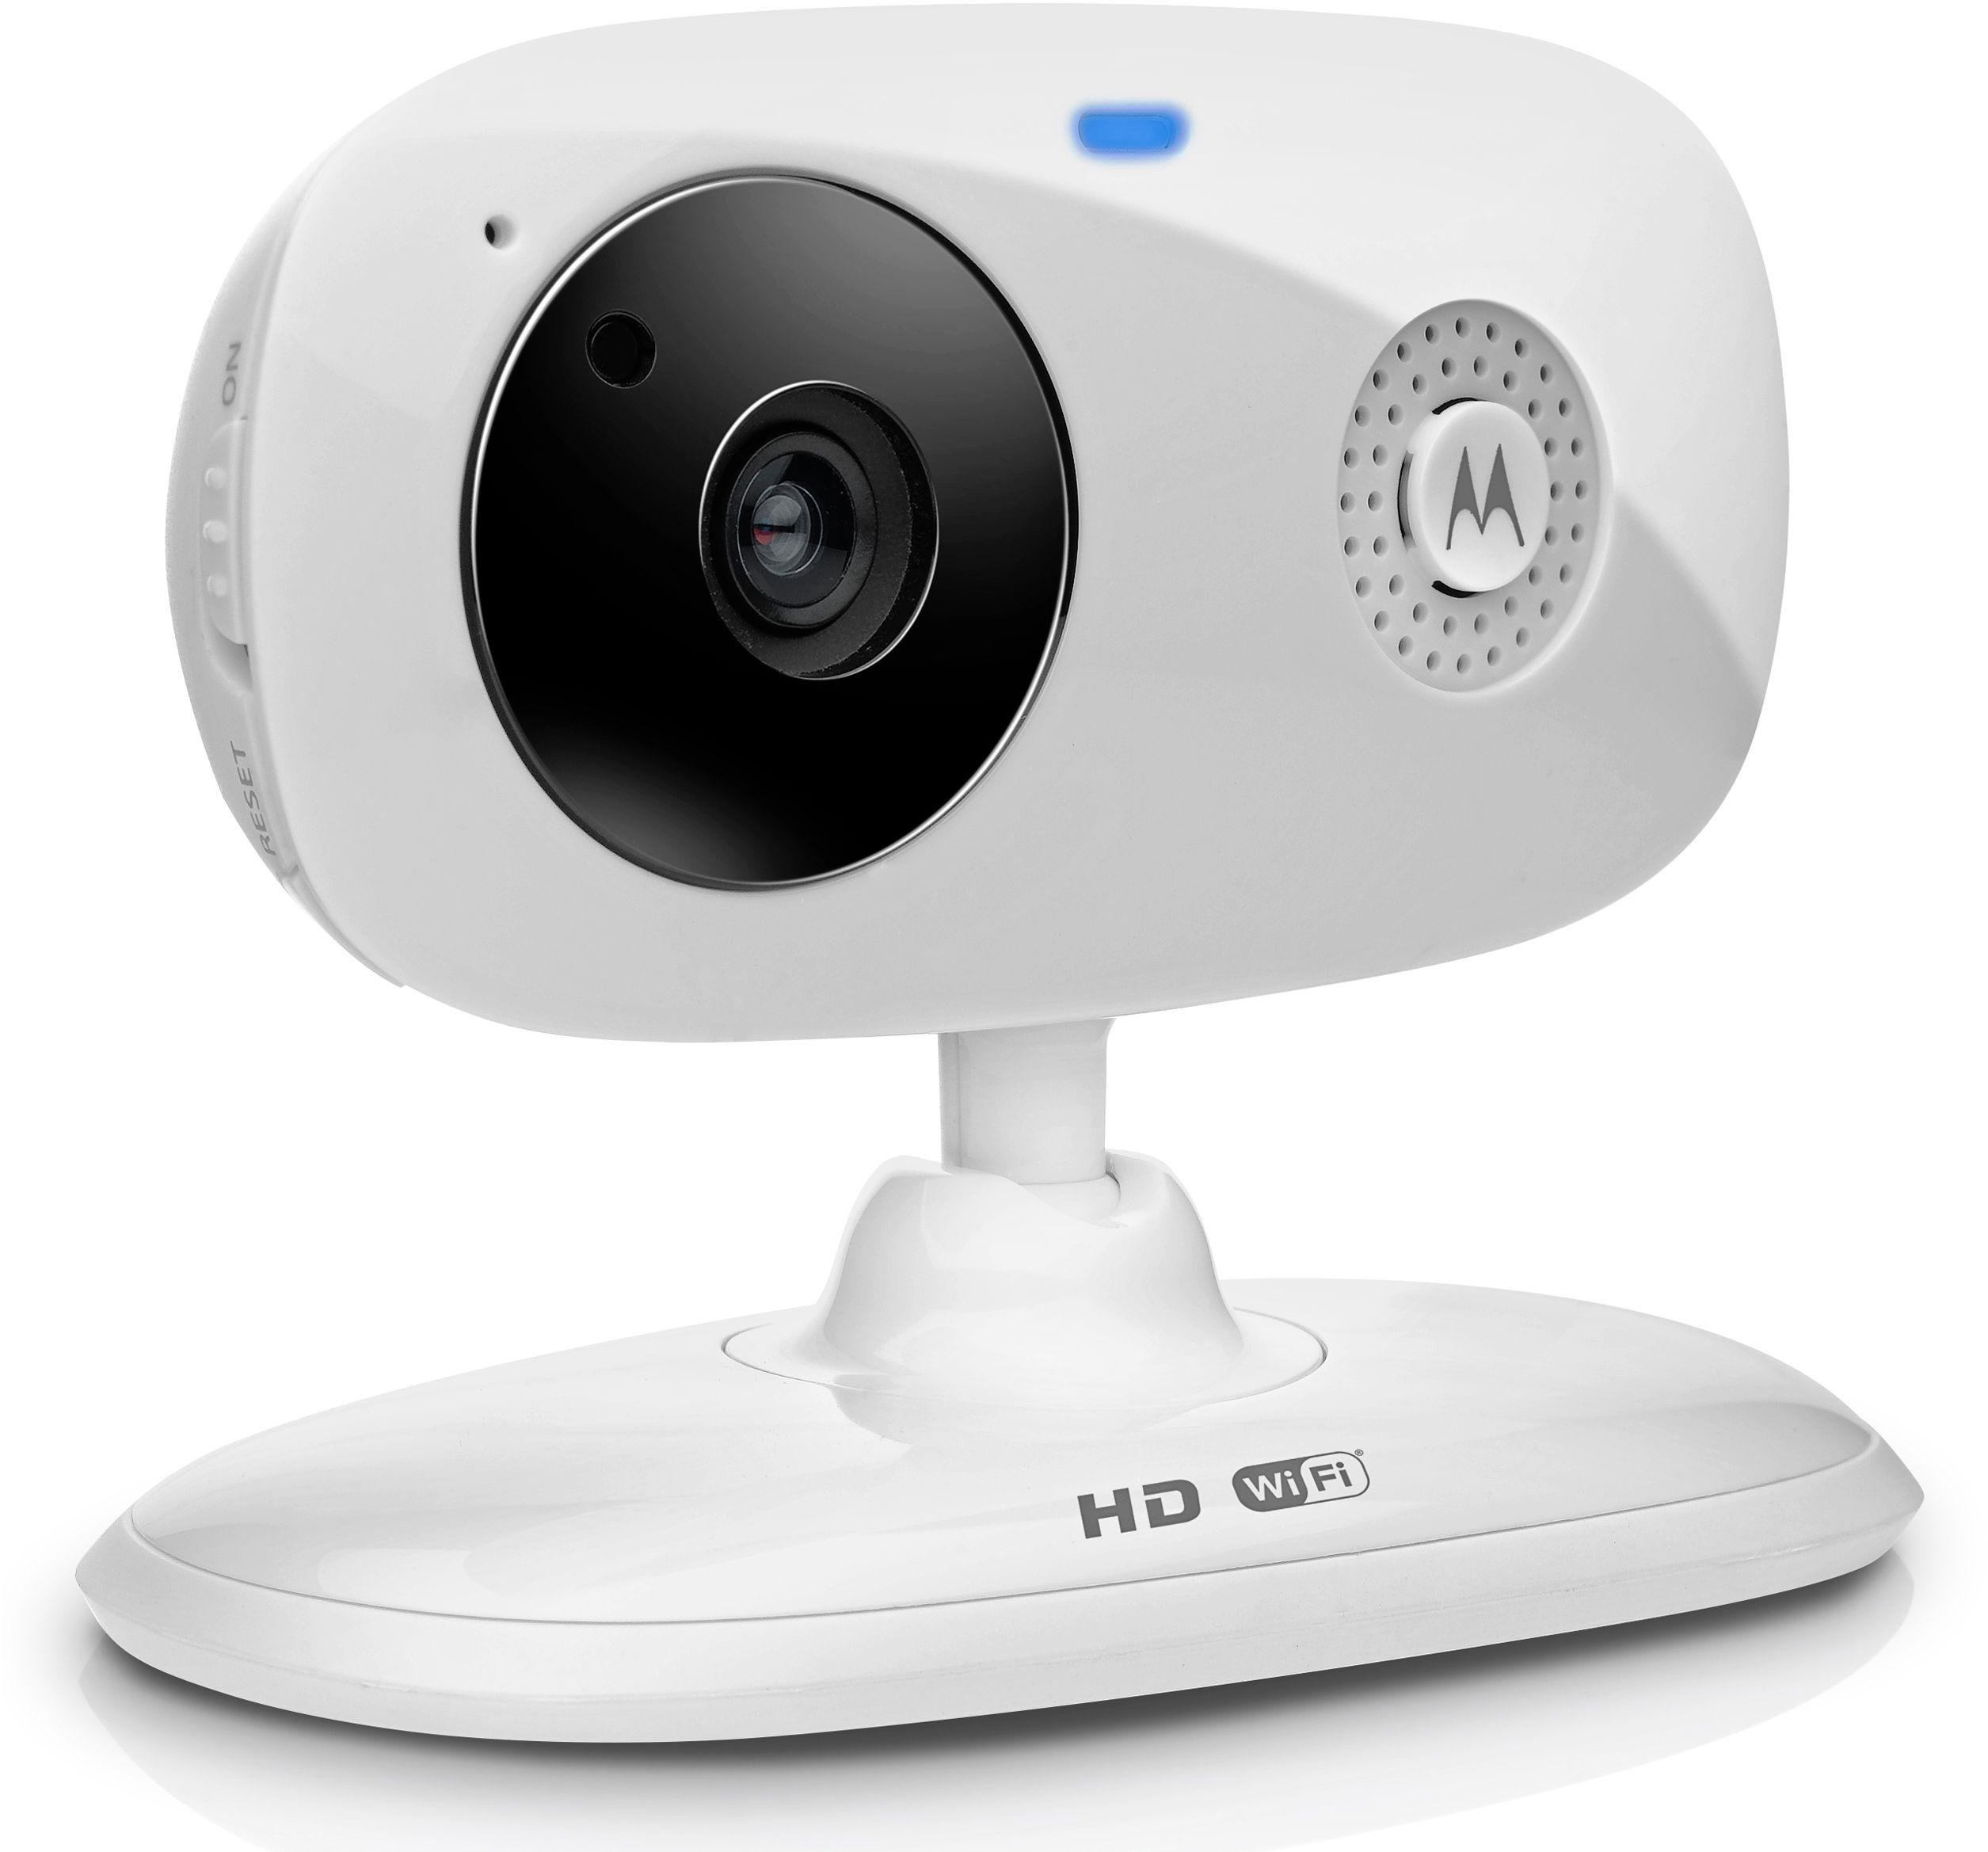 Image of Motorola - Focus 66 Wi-Fi HD Security Camera